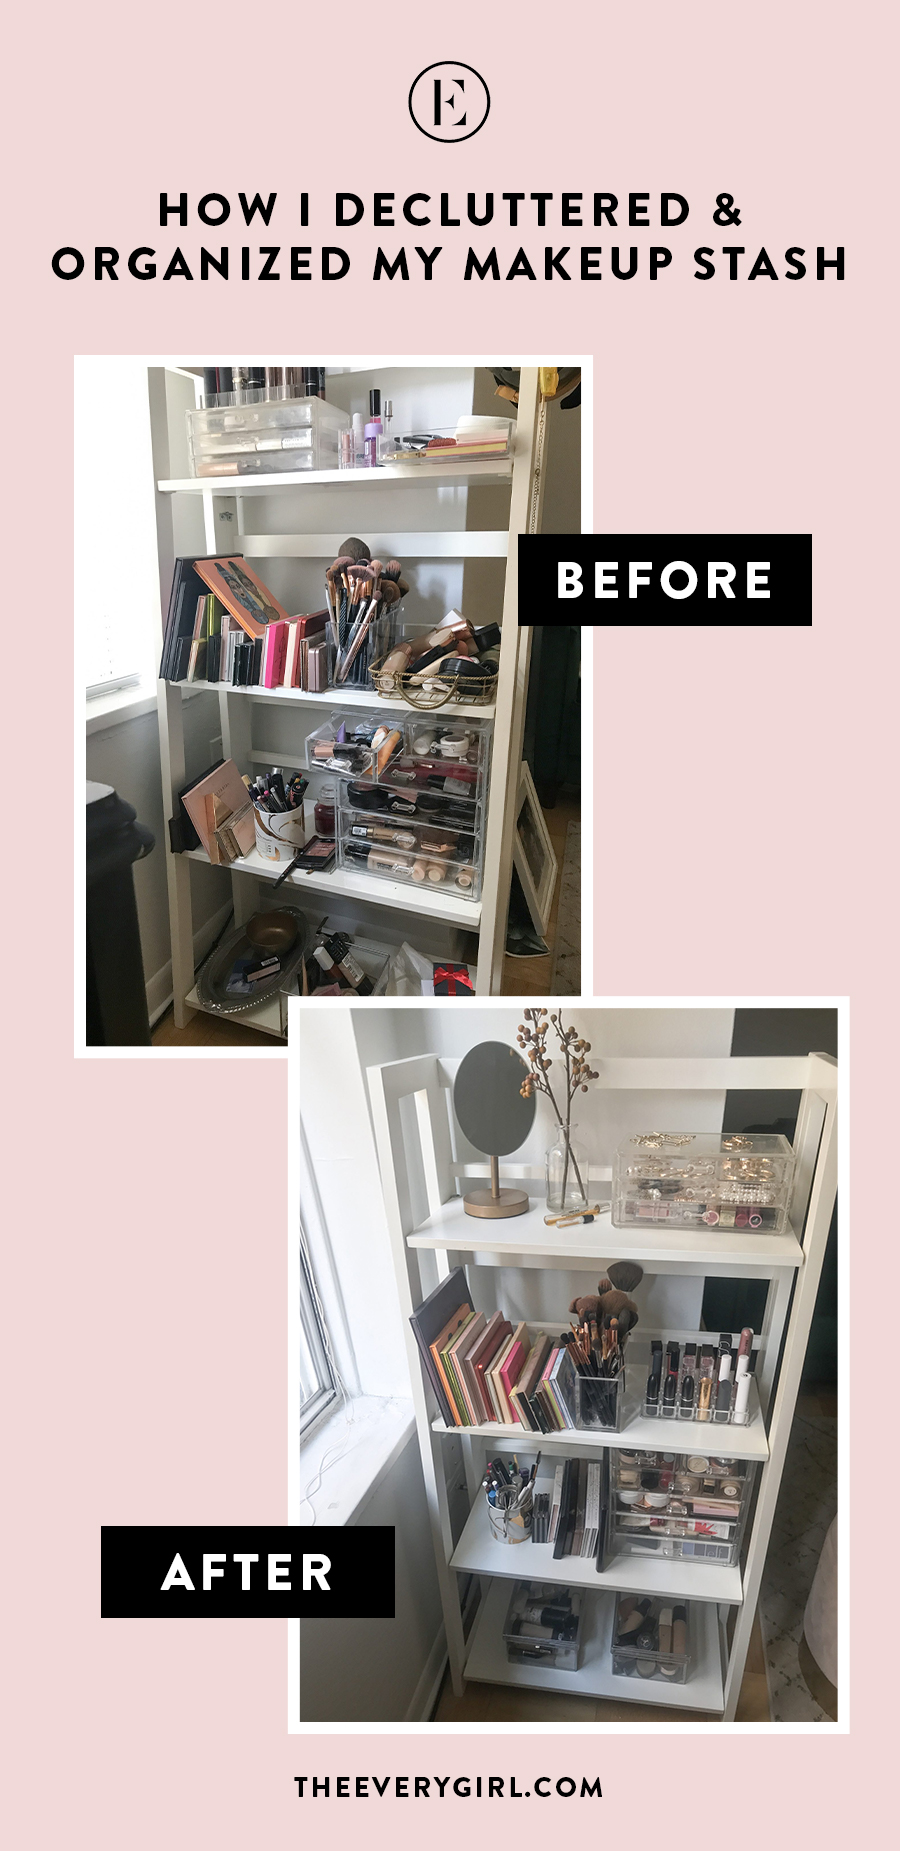 How I Decluttered And Organized My Makeup Stash The Everygirl